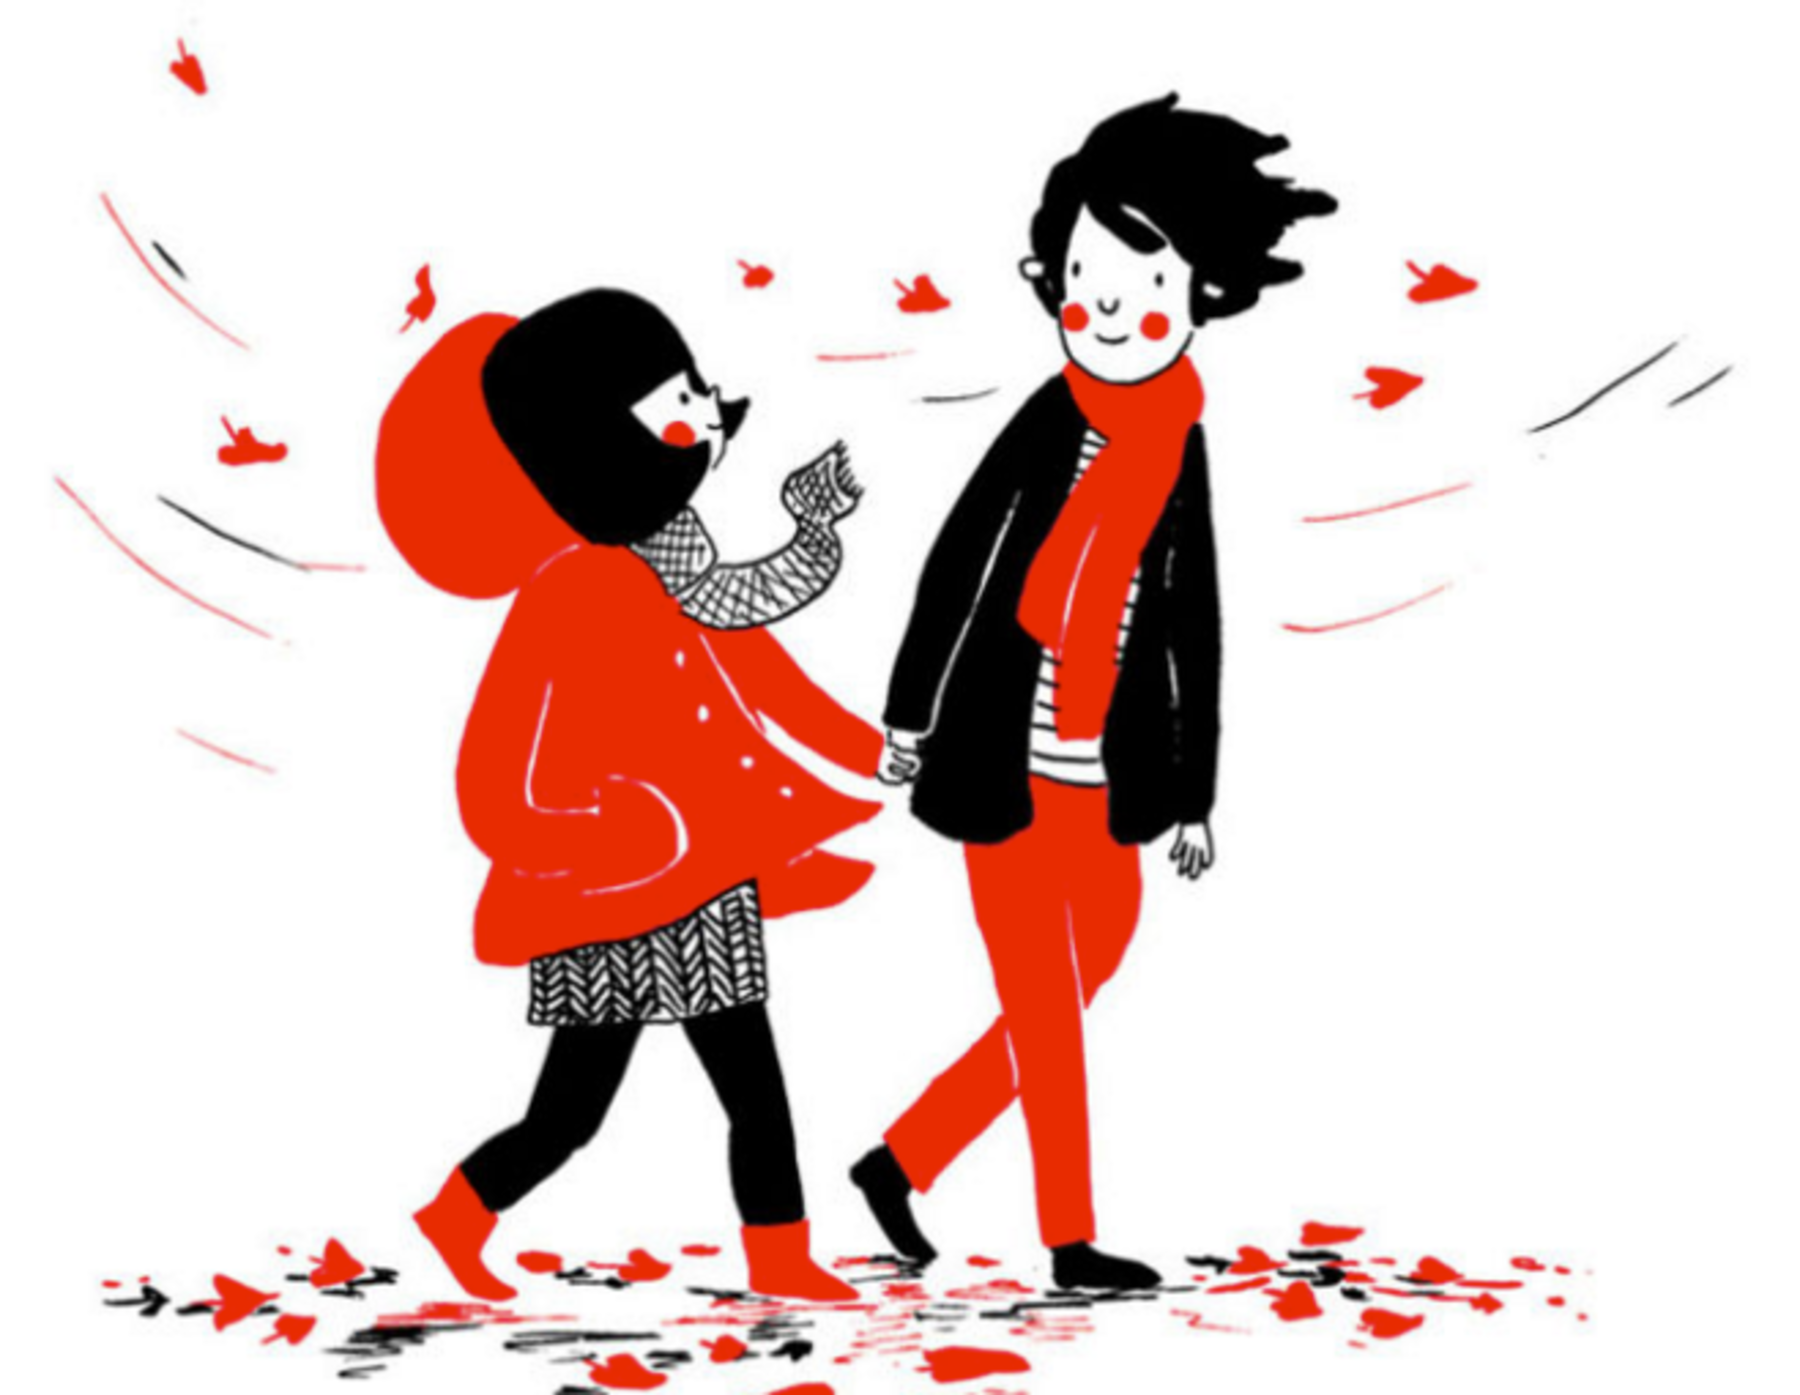 Cute Illustrations Demonstrate What True Love Really Is Small - Cute illustrations demonstrate what true love really is